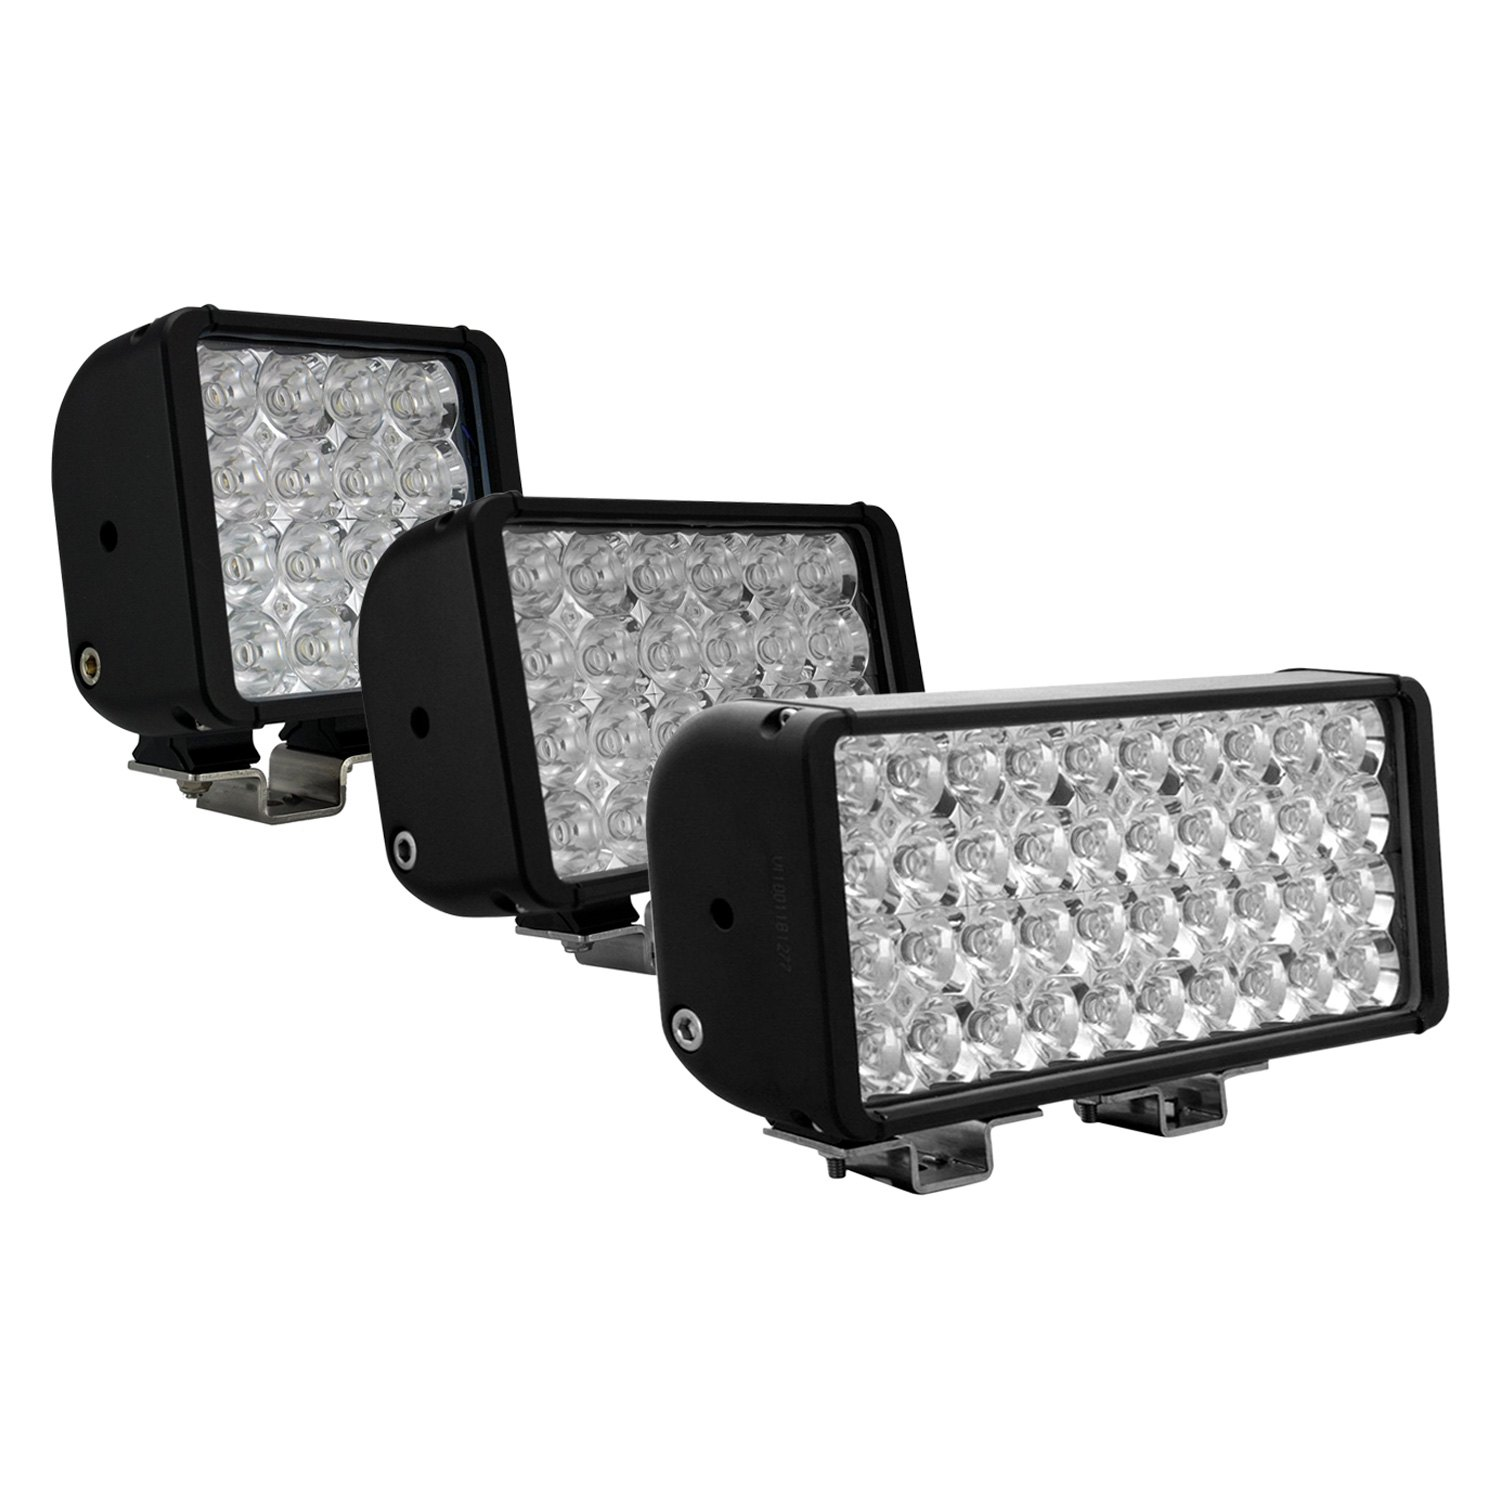 Vision x xmitter quad row led light bar vision x xmitter quad row led light bars aloadofball Images